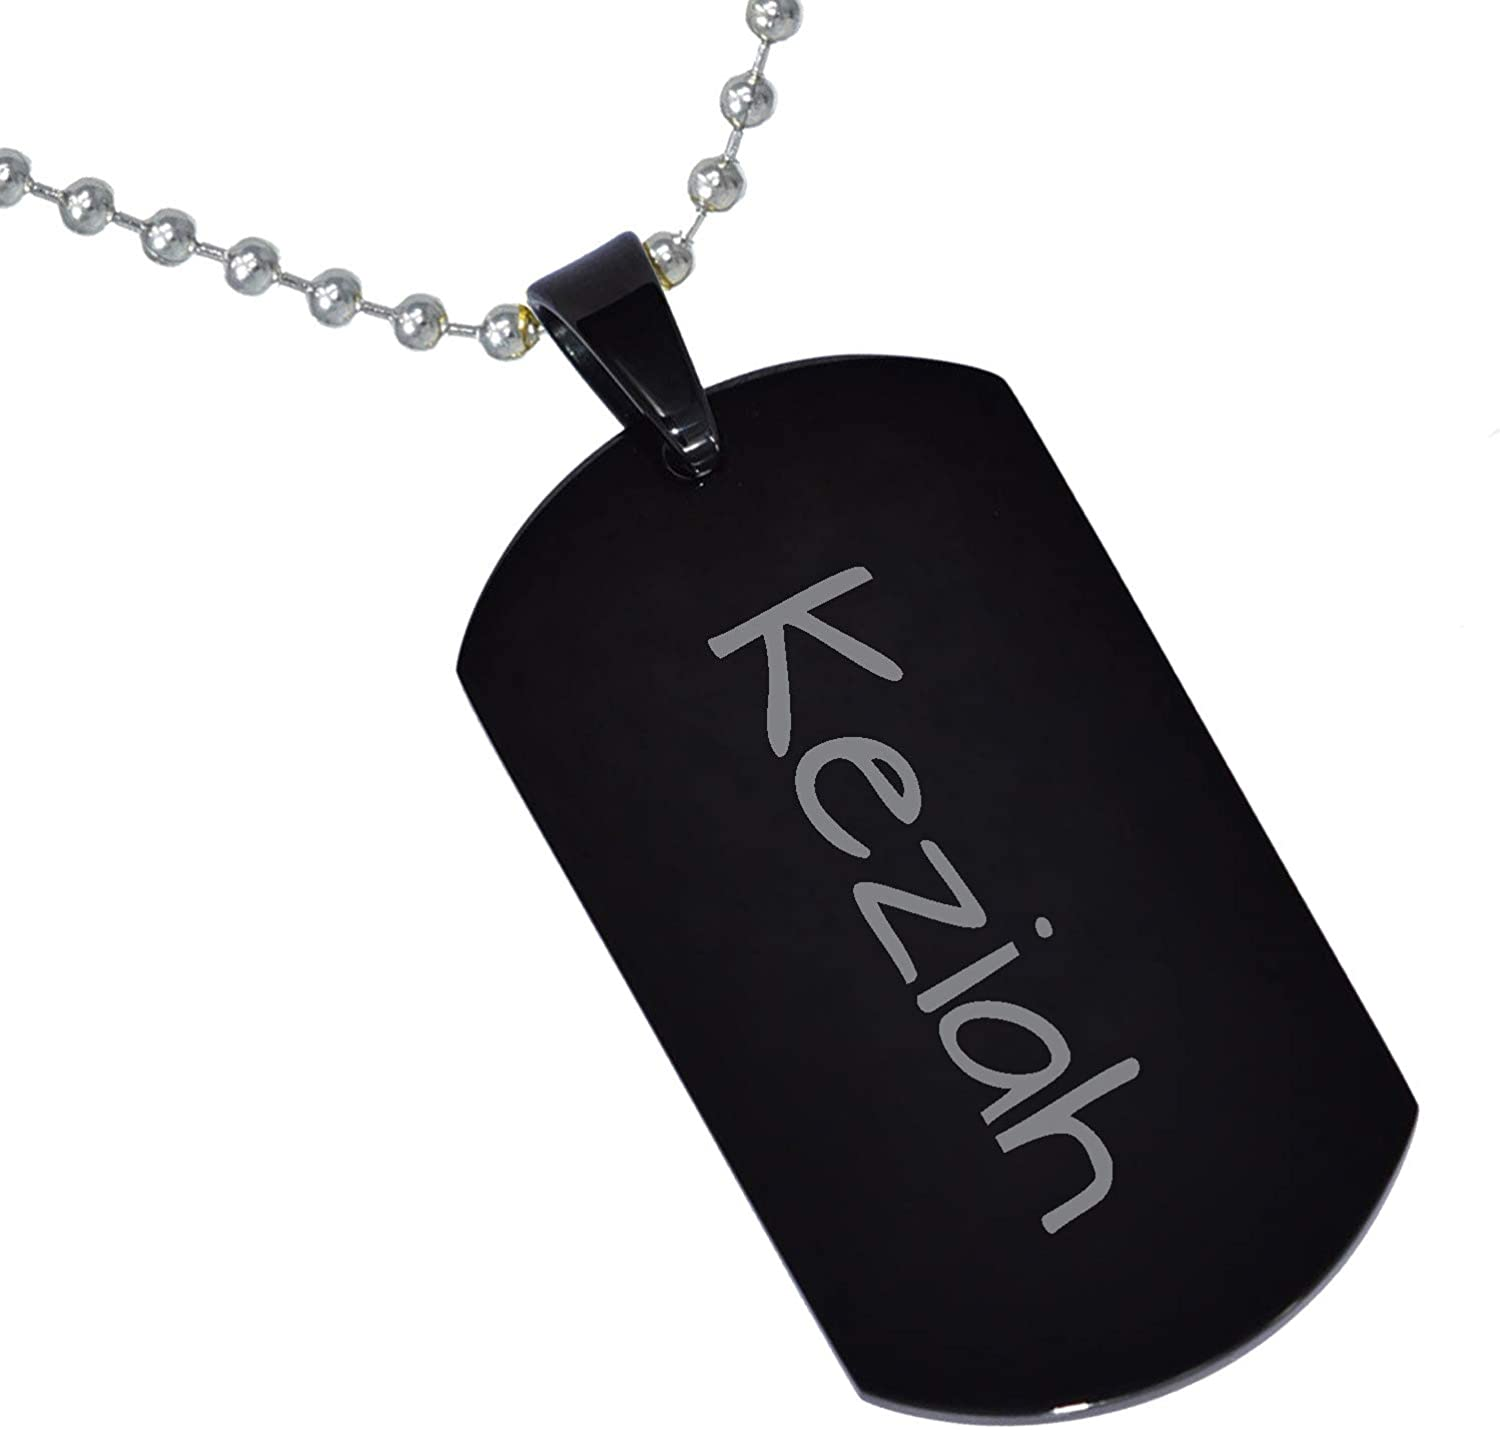 Stainless Steel Silver Gold Black Rose Gold Color Baby Name Keziah Engraved Personalized Gifts For Son Daughter Boyfriend Girlfriend Initial Customizable Pendant Necklace Dog Tags 24 Ball Chain